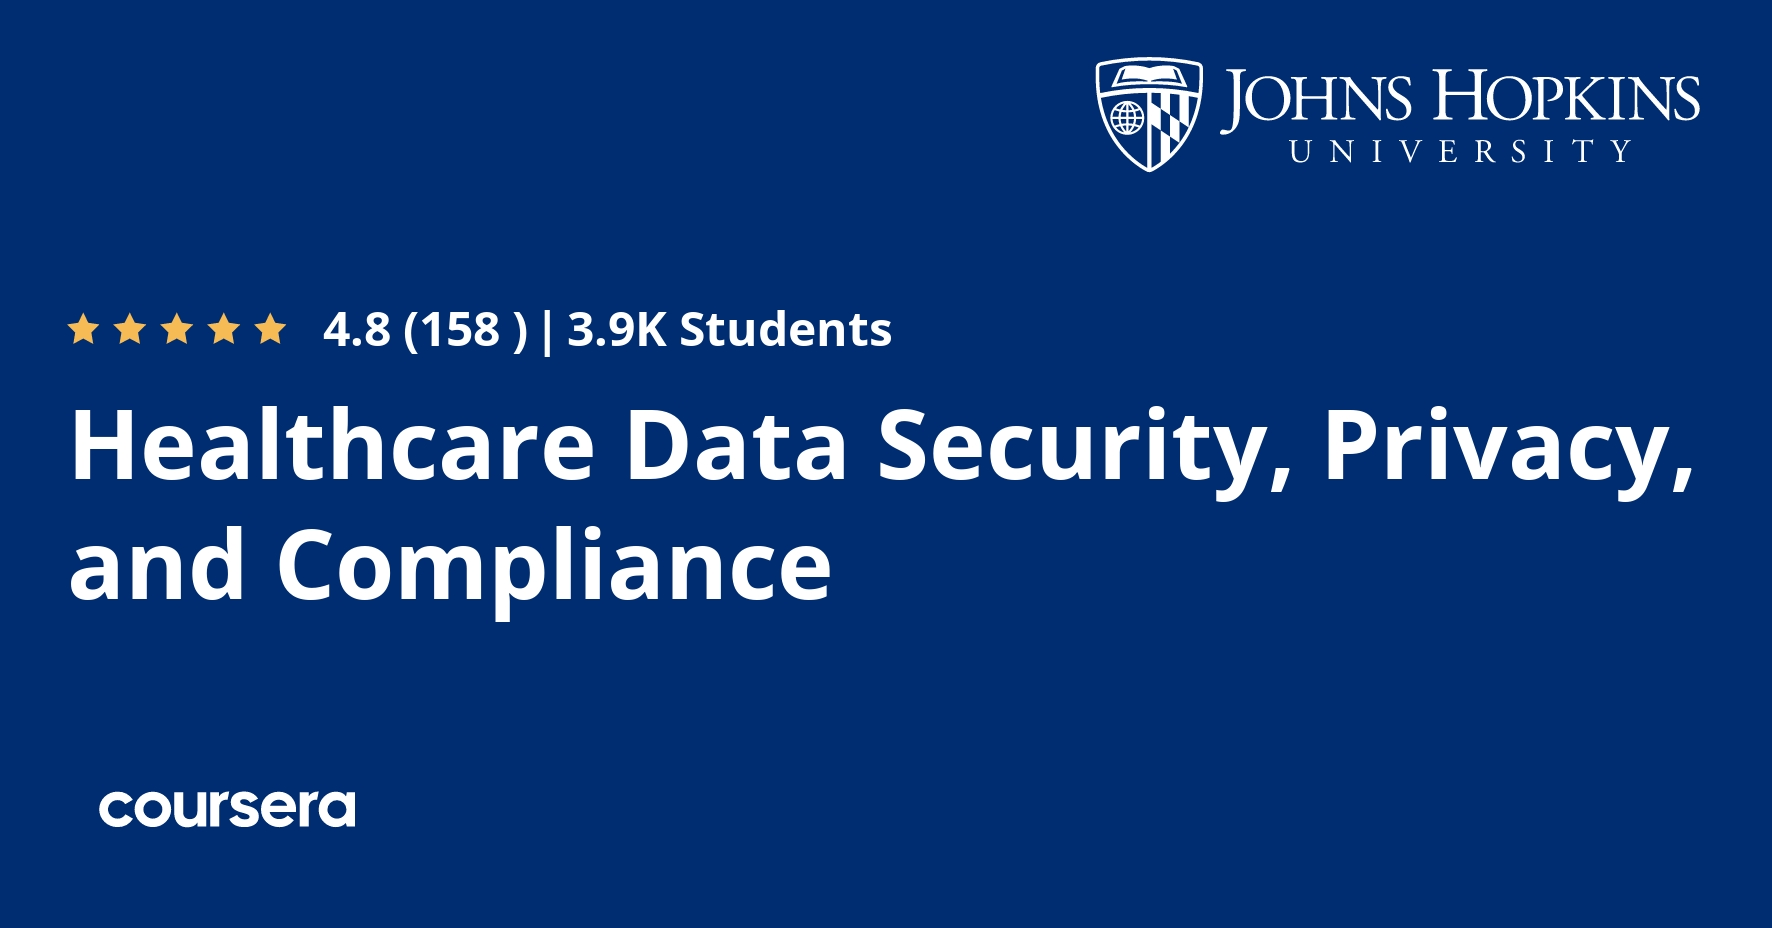 Healthcare Data Security, Privacy, and Compliance Coursera